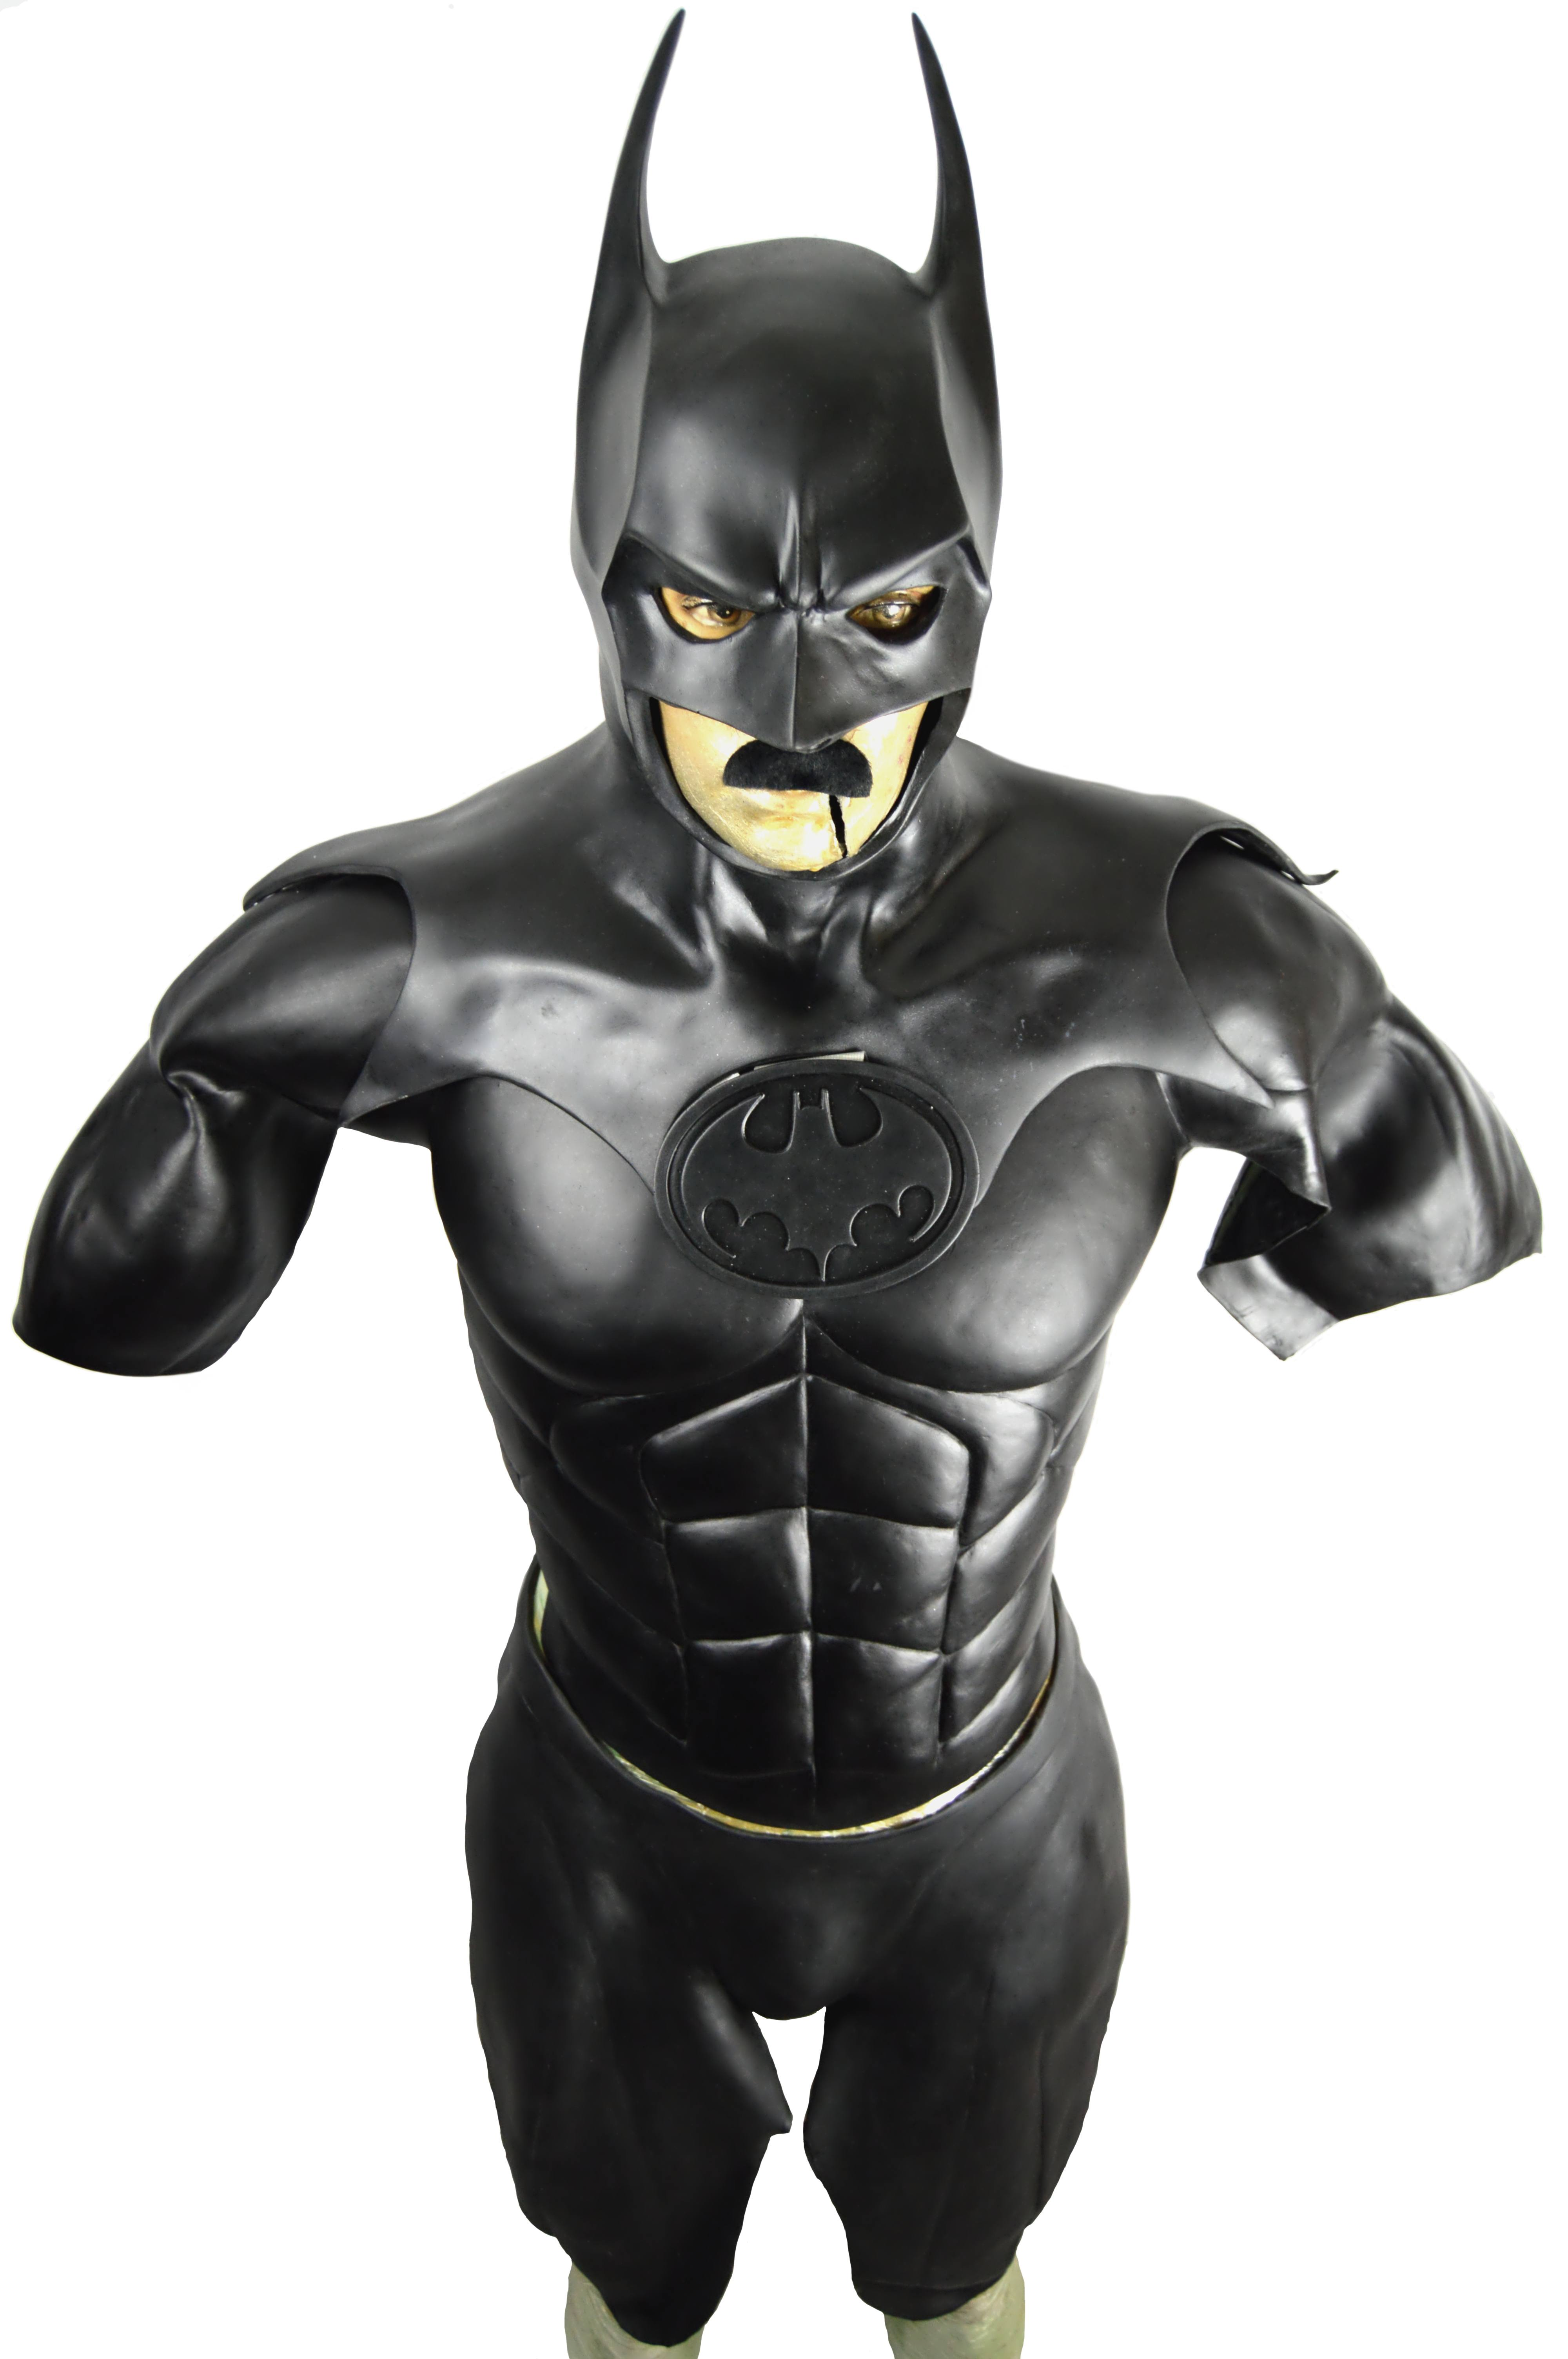 1989 Michael Keaton Style Tim Burton Batman Chest Armor